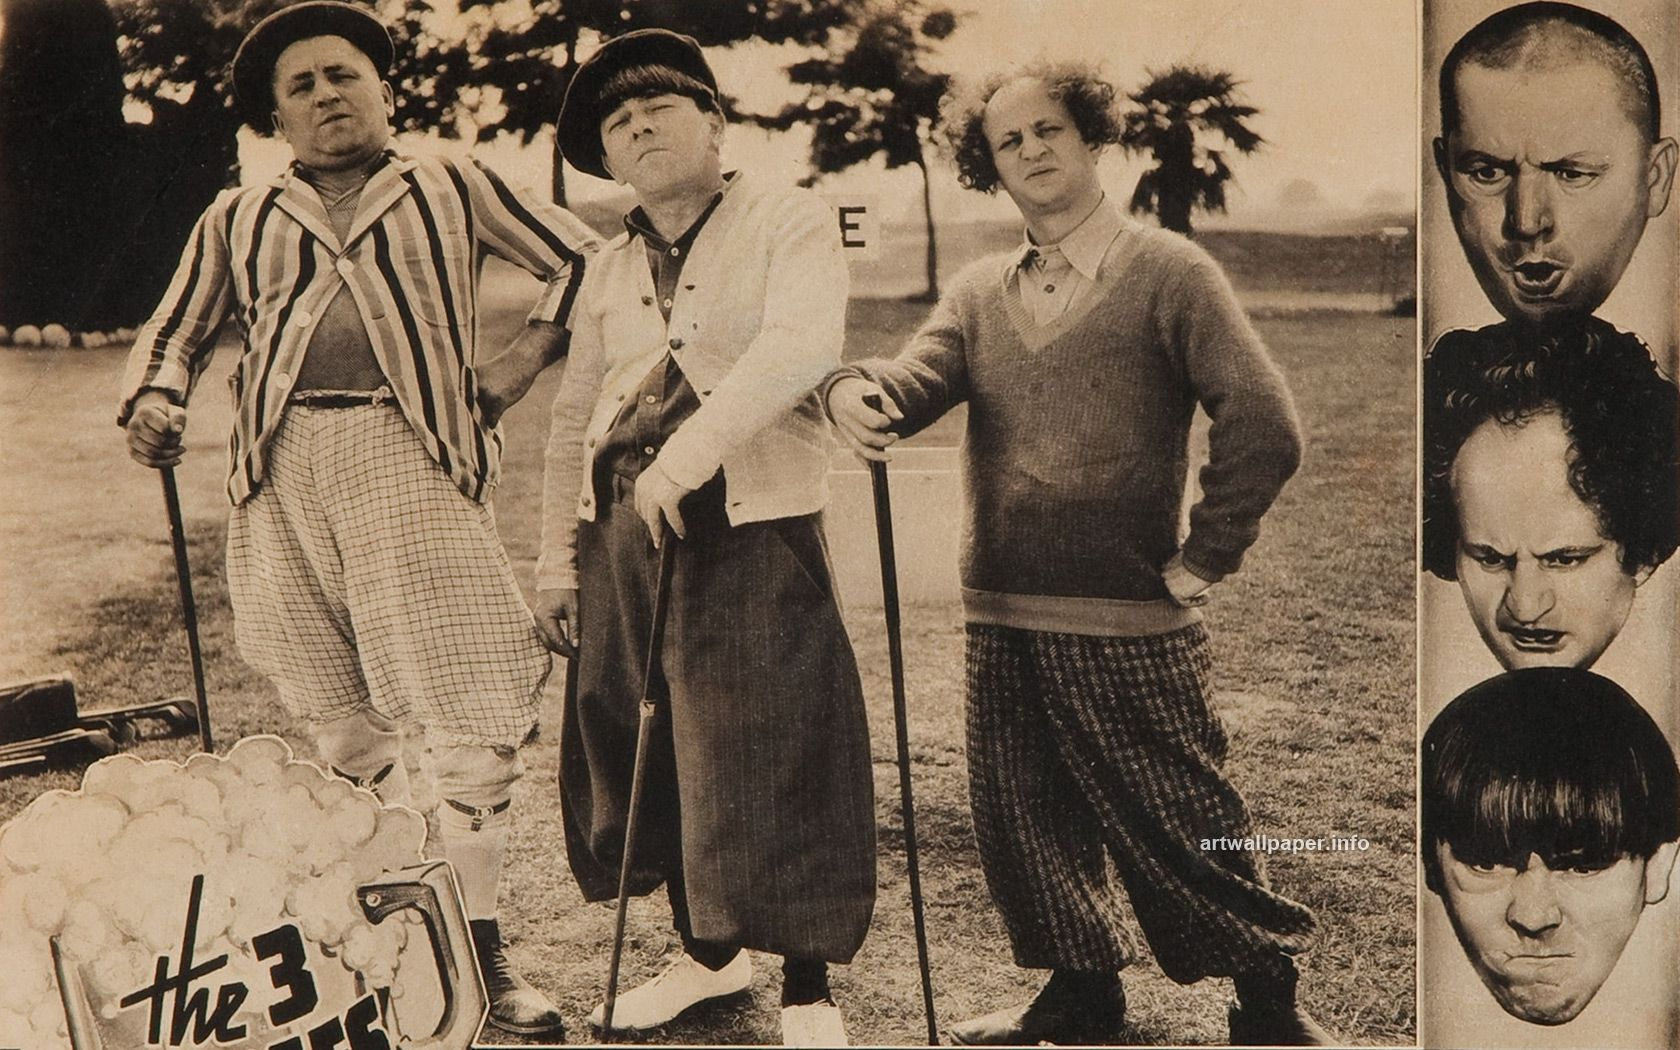 Old Pictures Three Stooges The Three Stooges Wallpaper 02